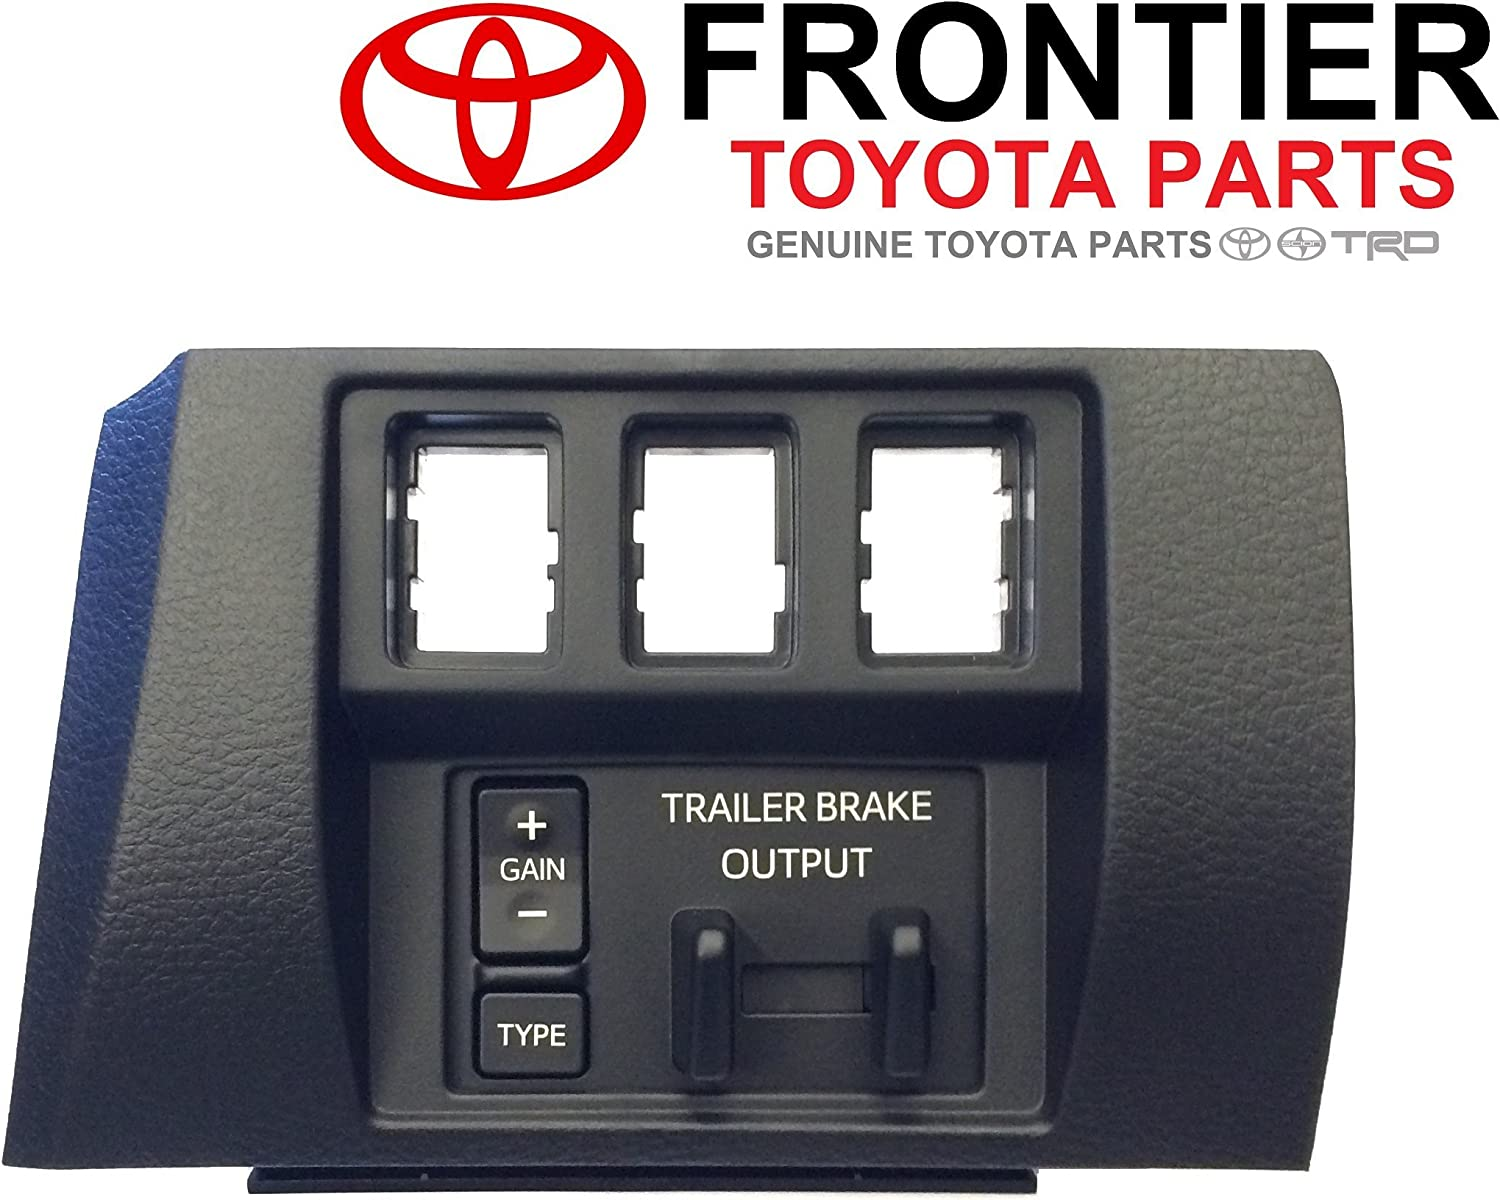 amazon.com: genuine toyota trailer brake controller 89547-0c011 with dash  bezel 55447-0c020-c0. 2016-2017 5.7l tundra only.: automotive  amazon.com